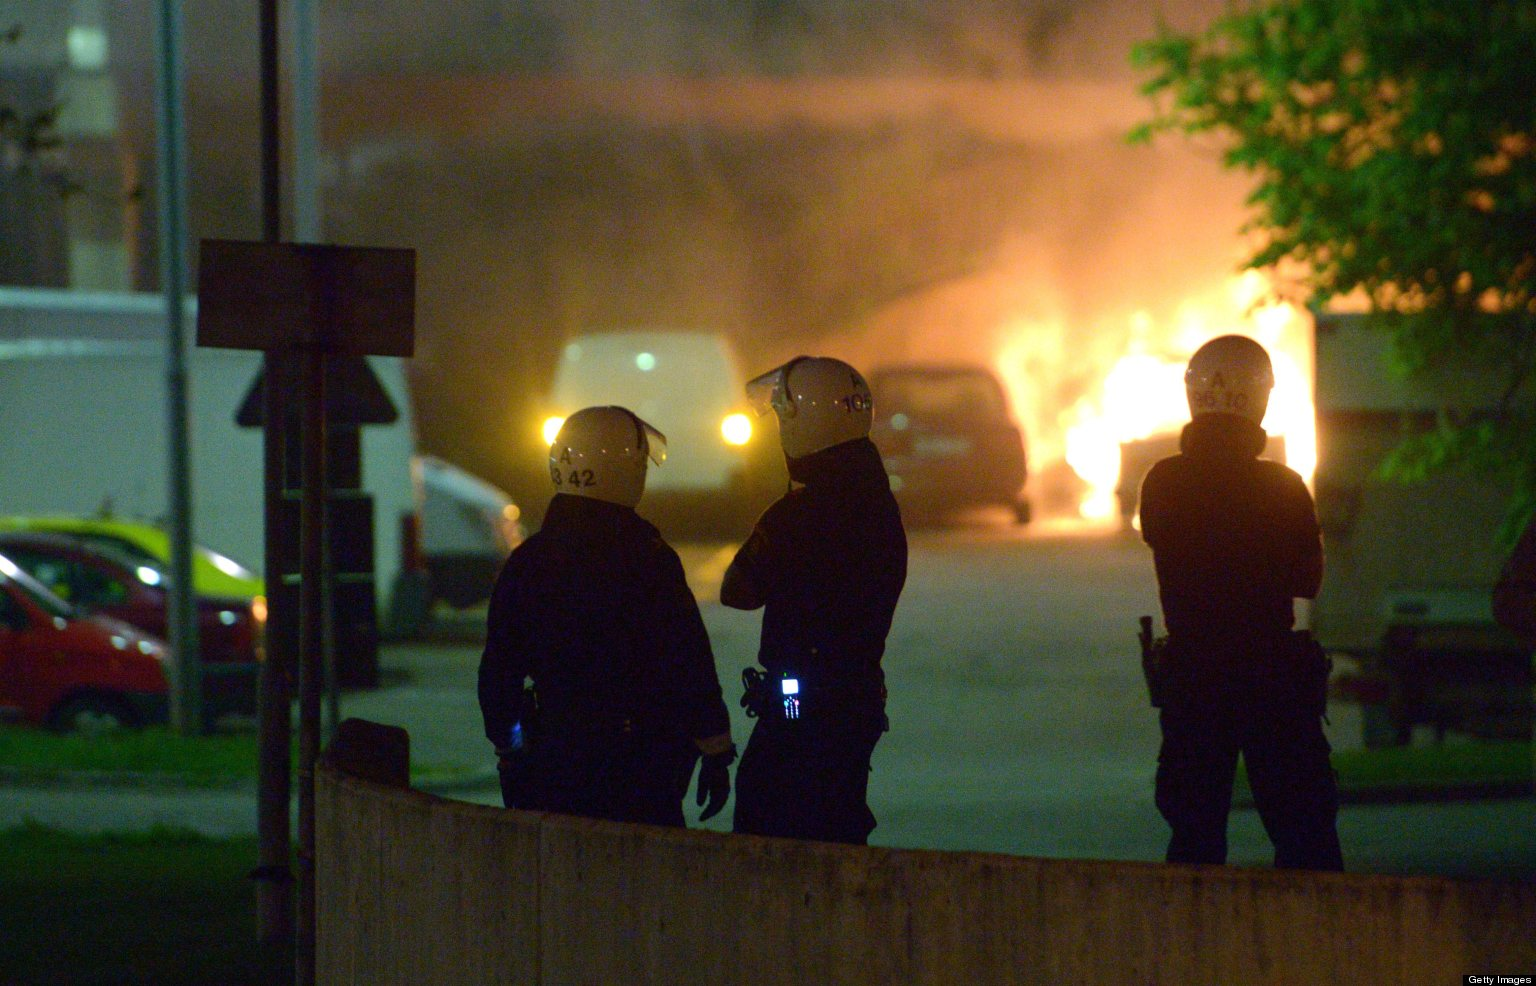 Youths In Stockholm Suburb Riot After Police Shooting